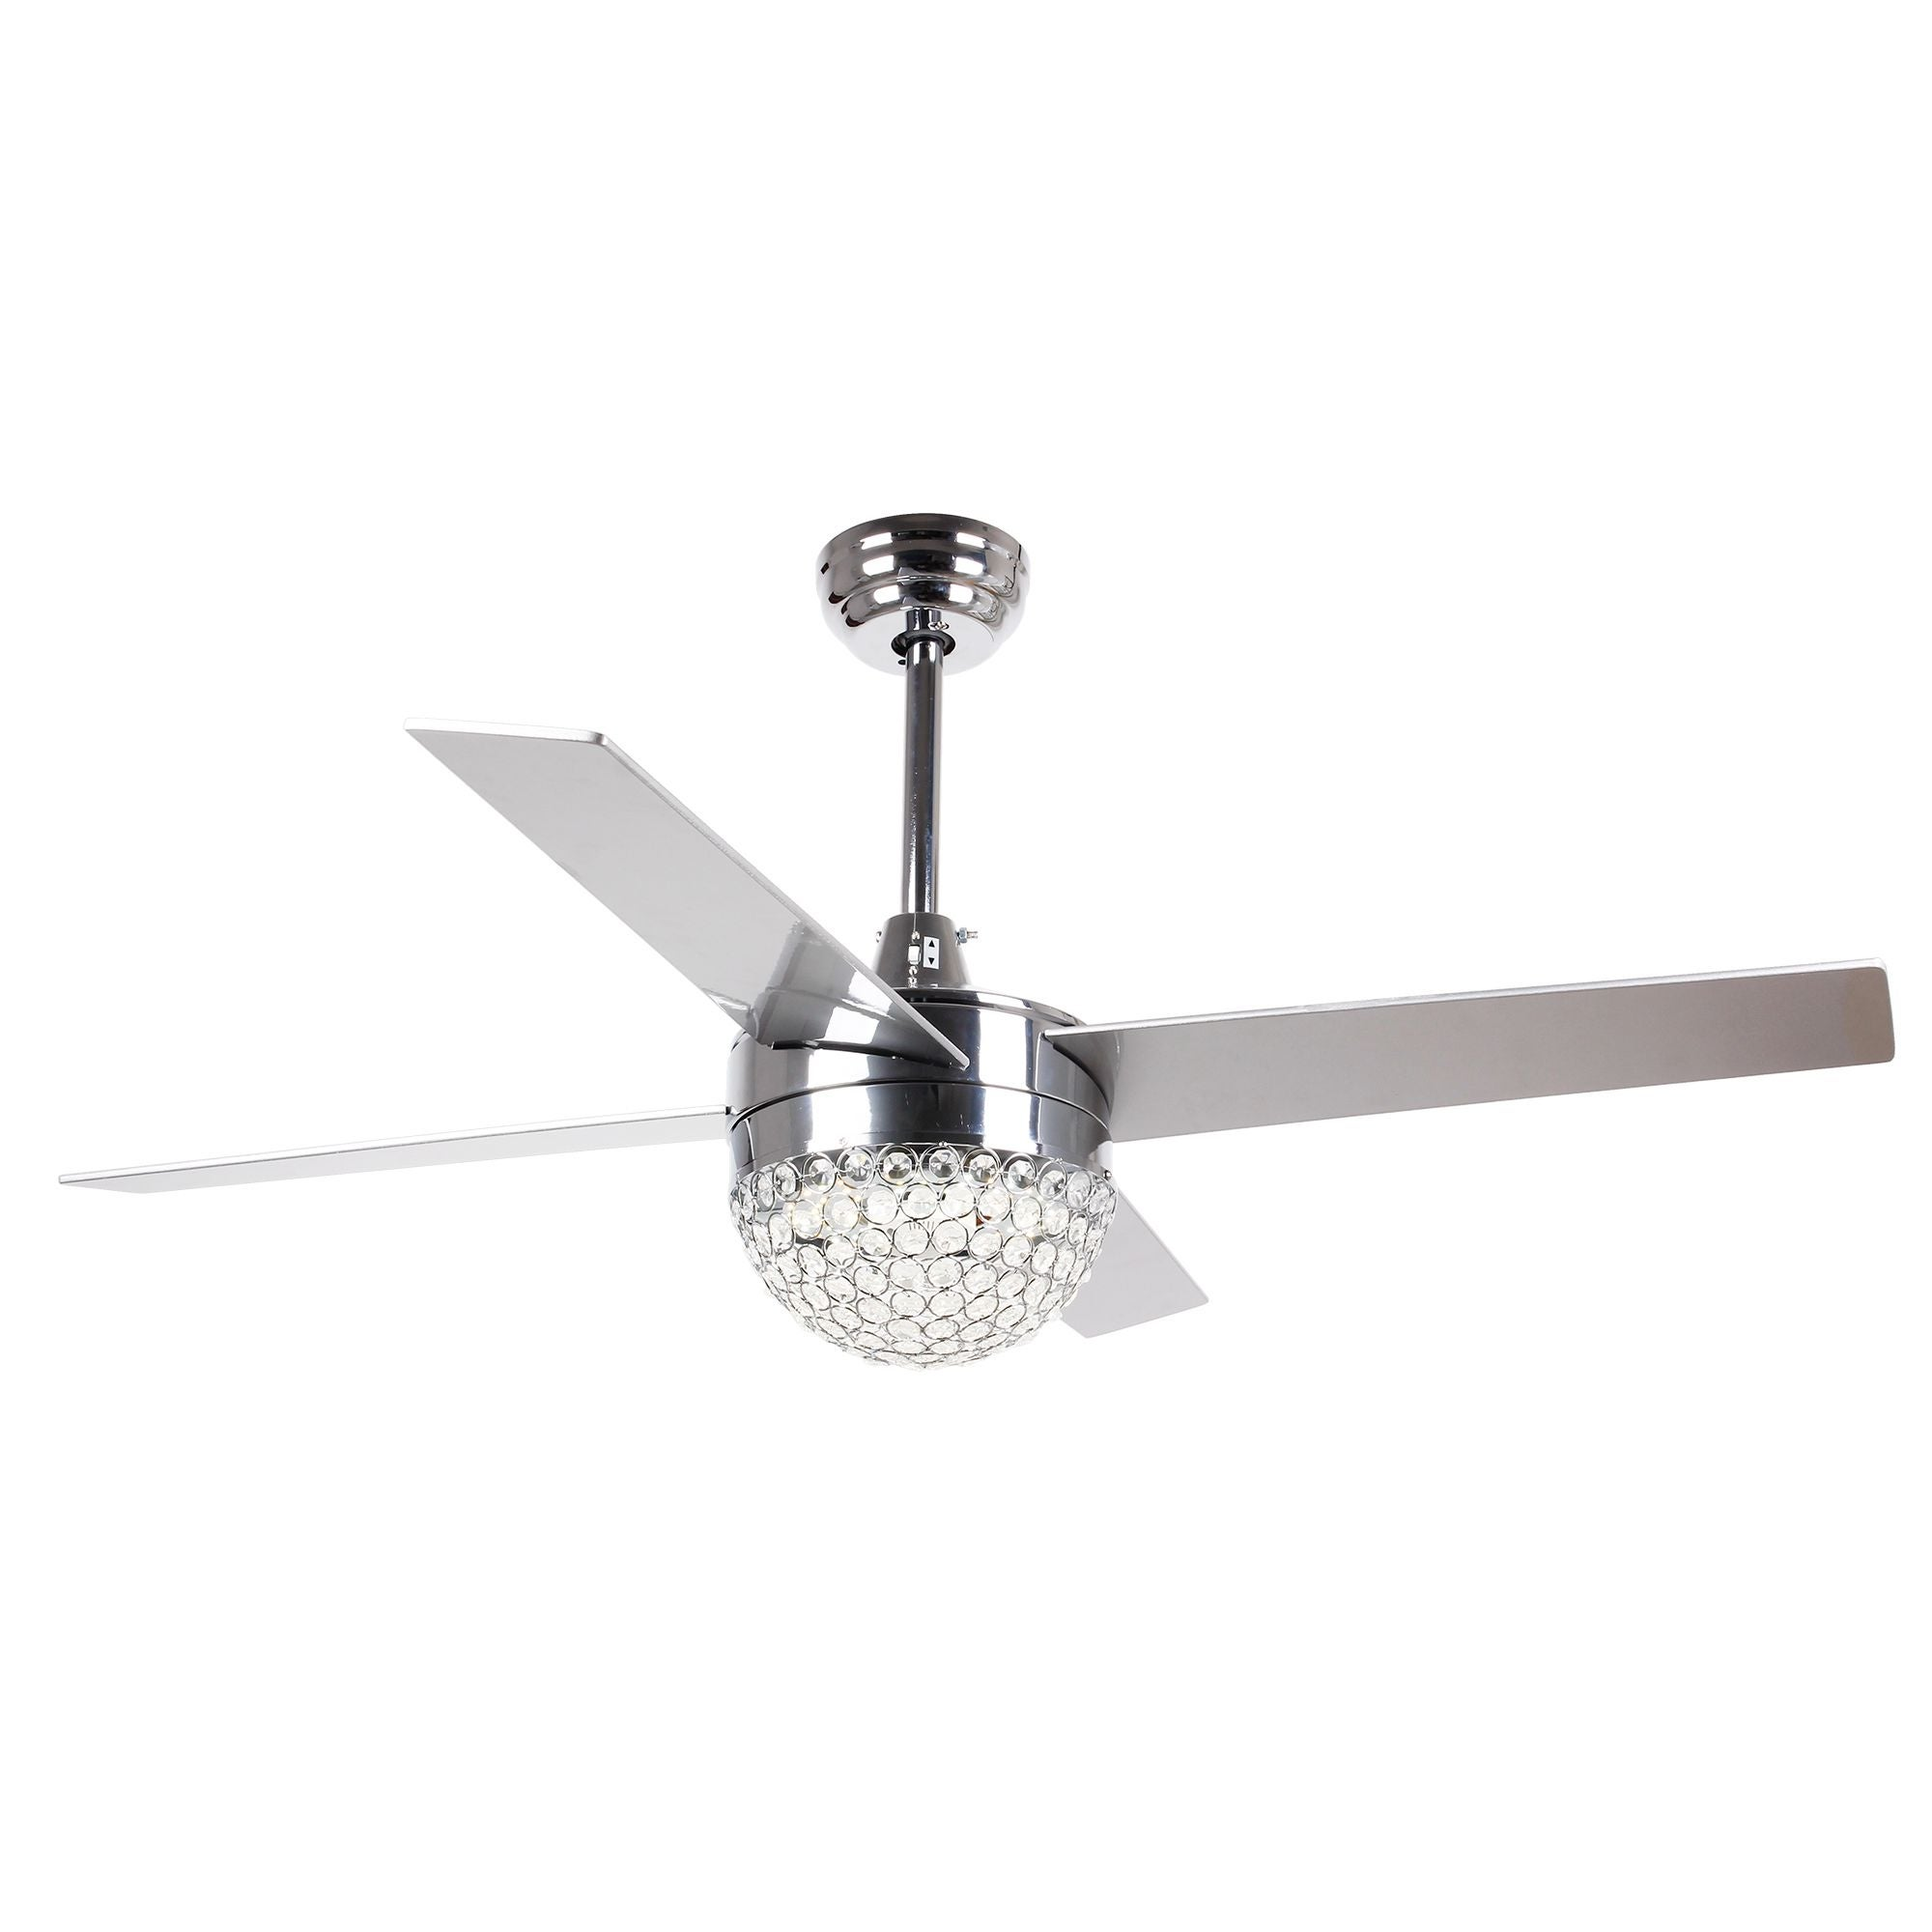 48 Inch Modern 4 Blades Crystal Ceiling Fan With Remote And Light Kit